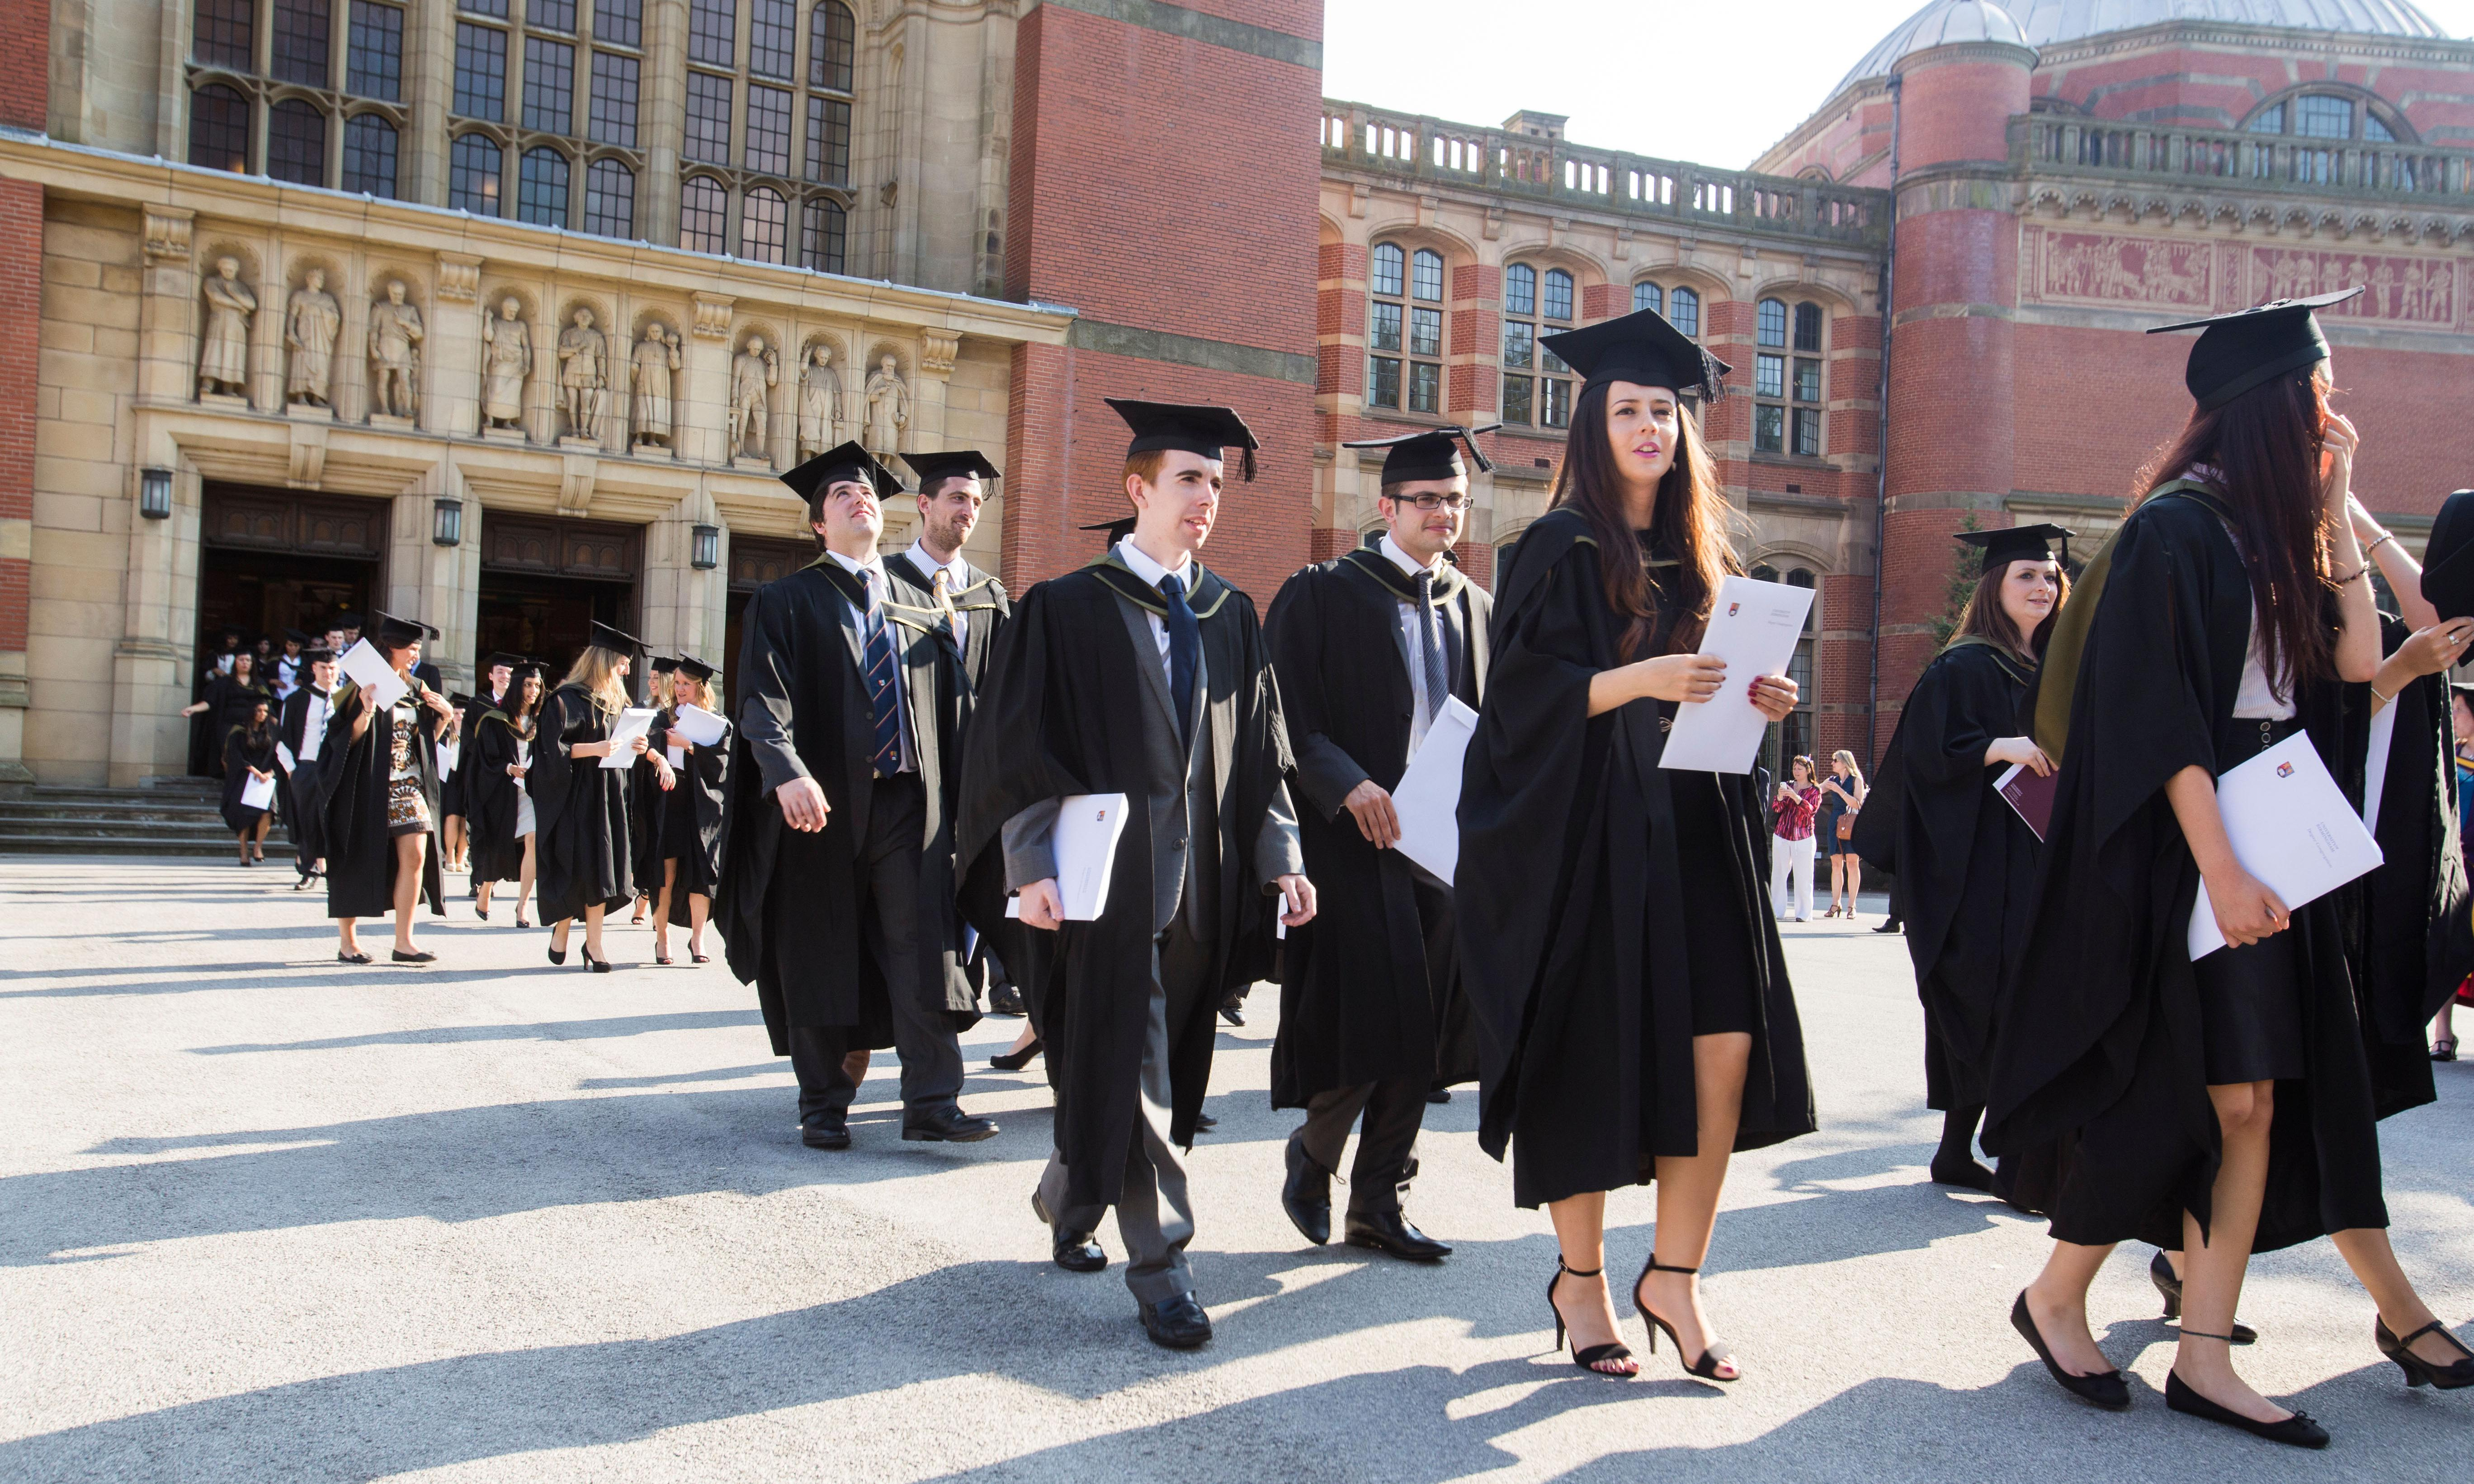 Cutting tuition fees won't help poorer students – reduce interest rates instead